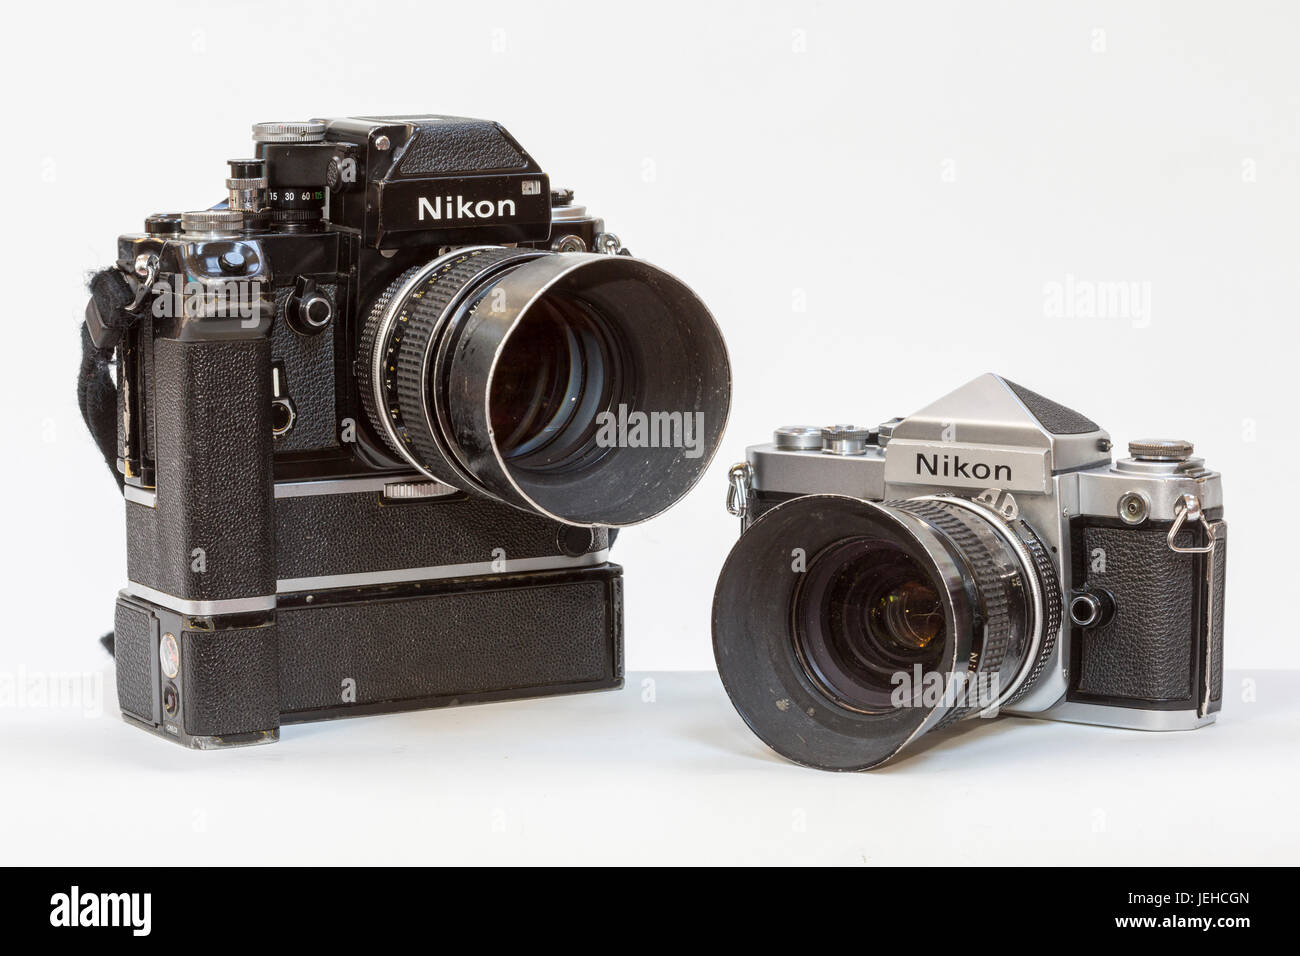 Nikon F2 Stock Photos & Nikon F2 Stock Images - Alamy